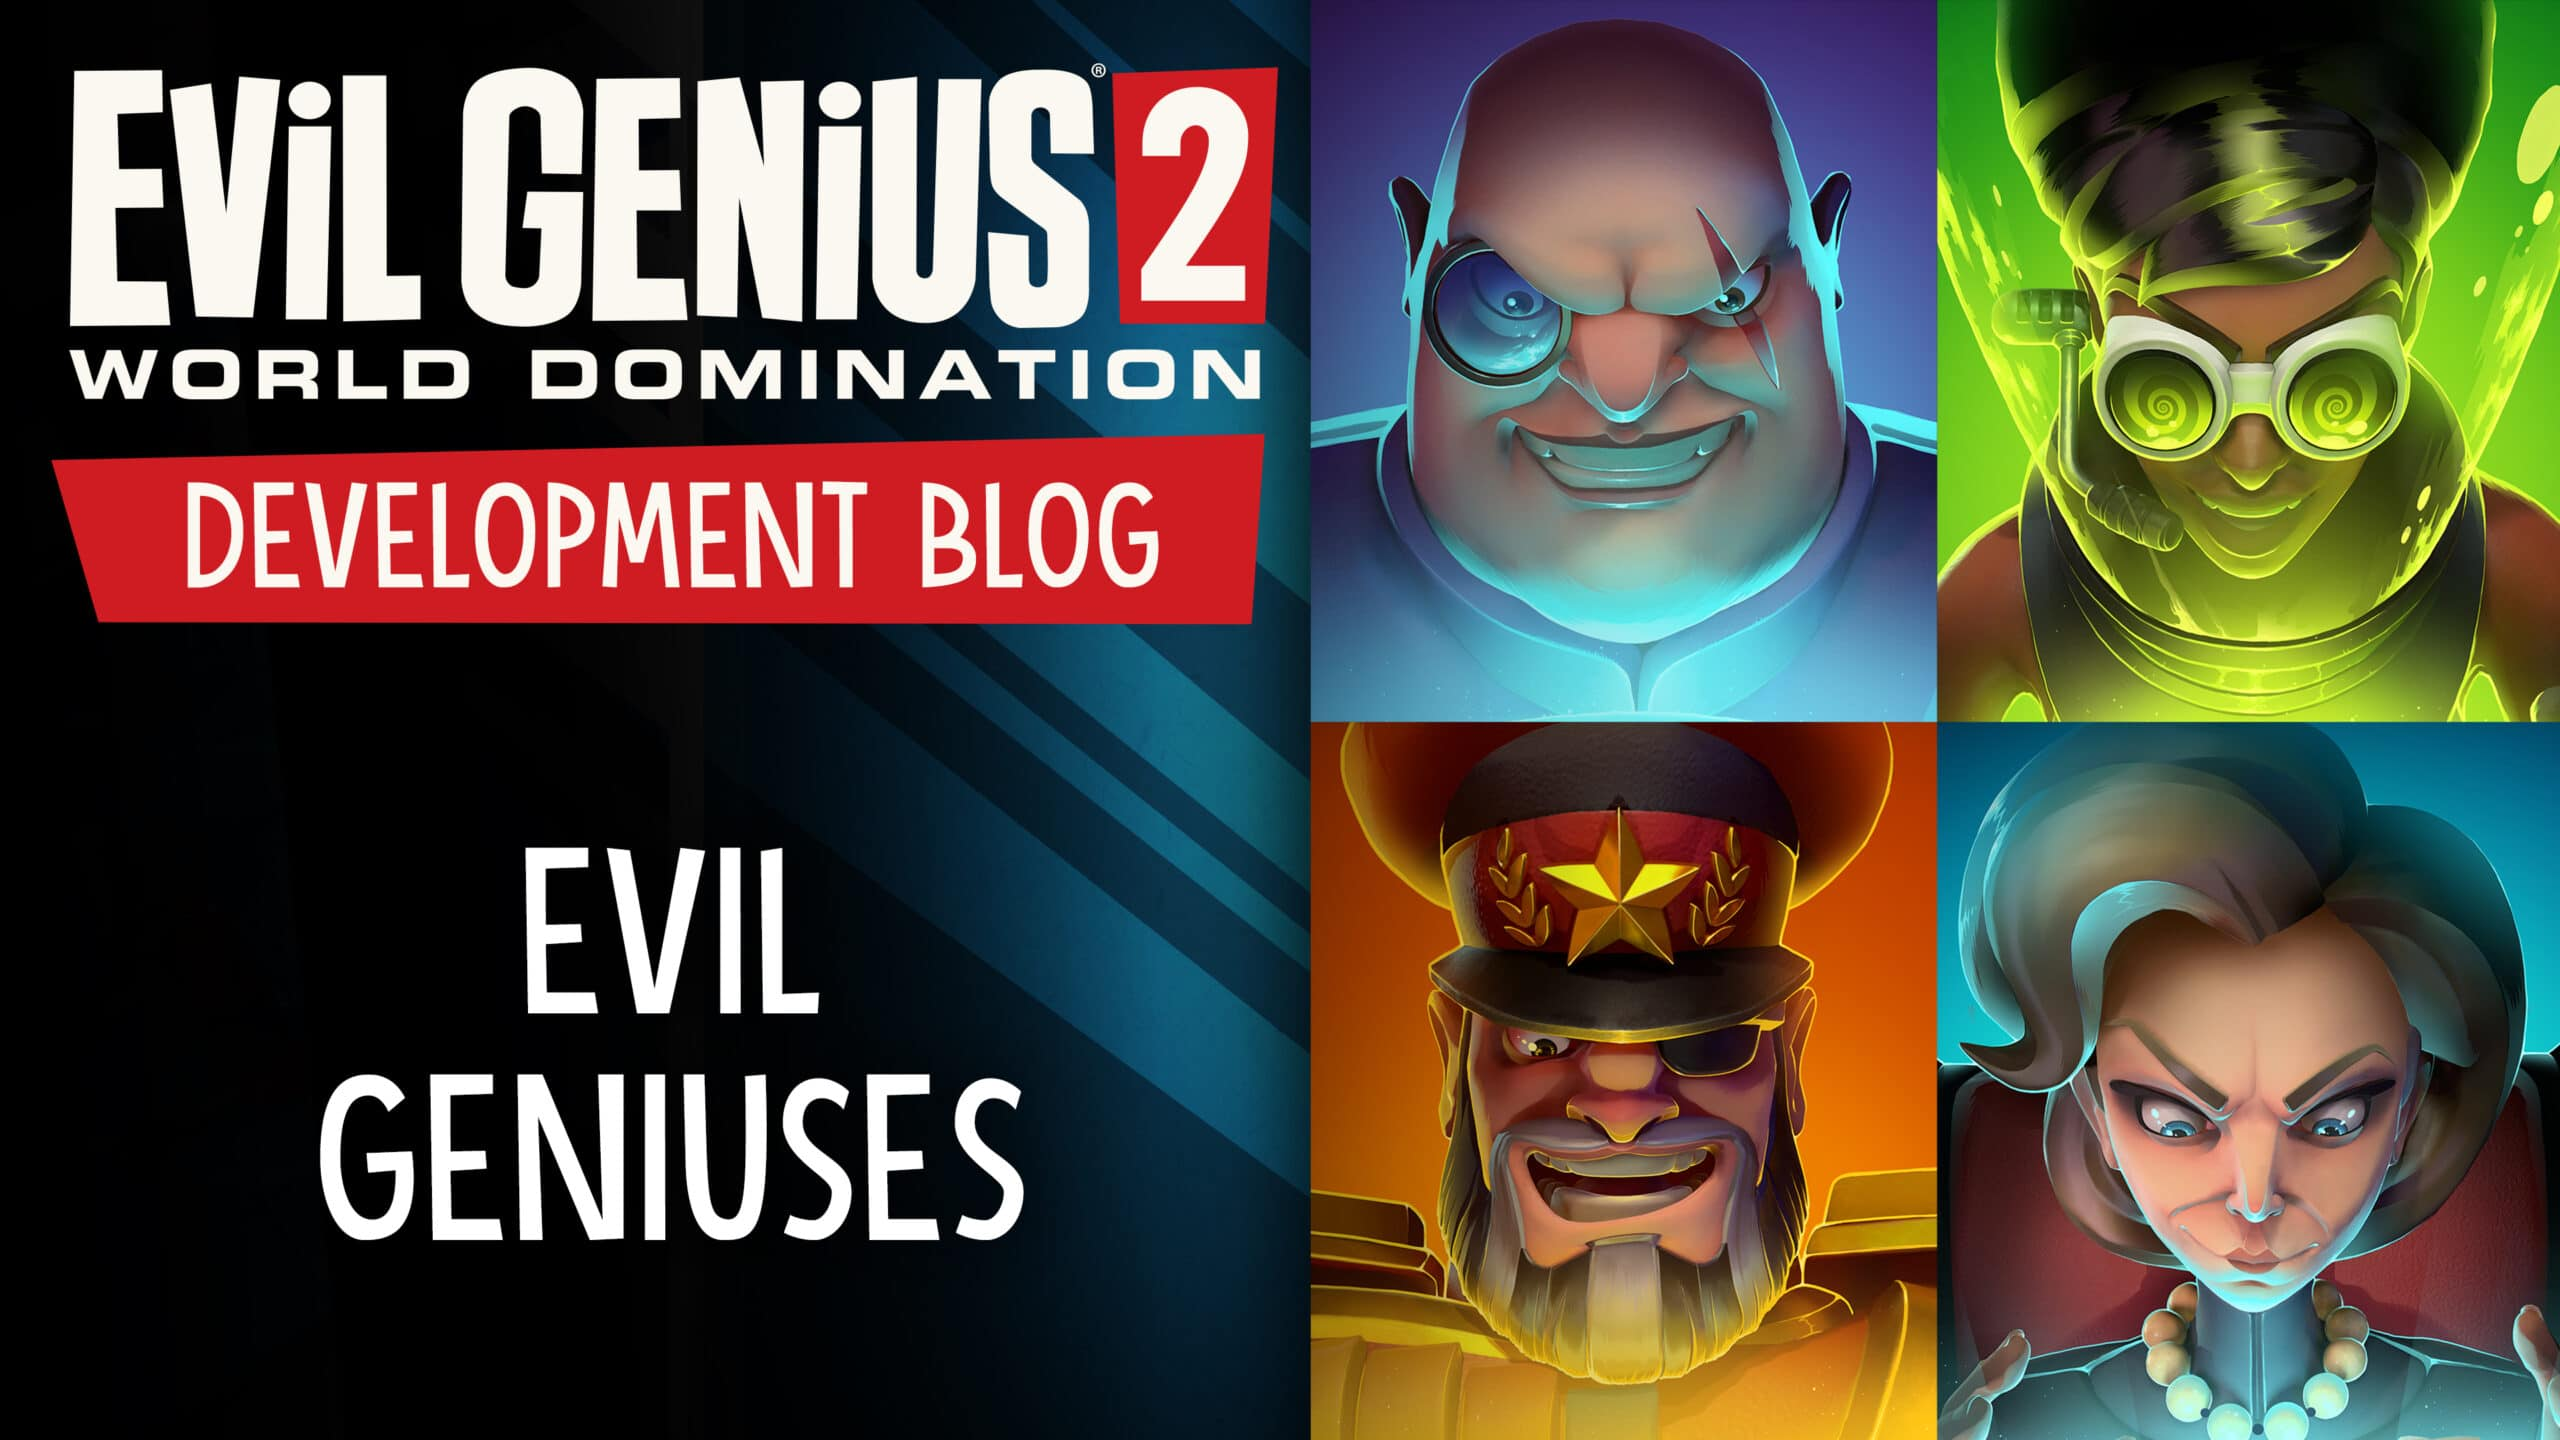 Evil Genius 2 Supervillains